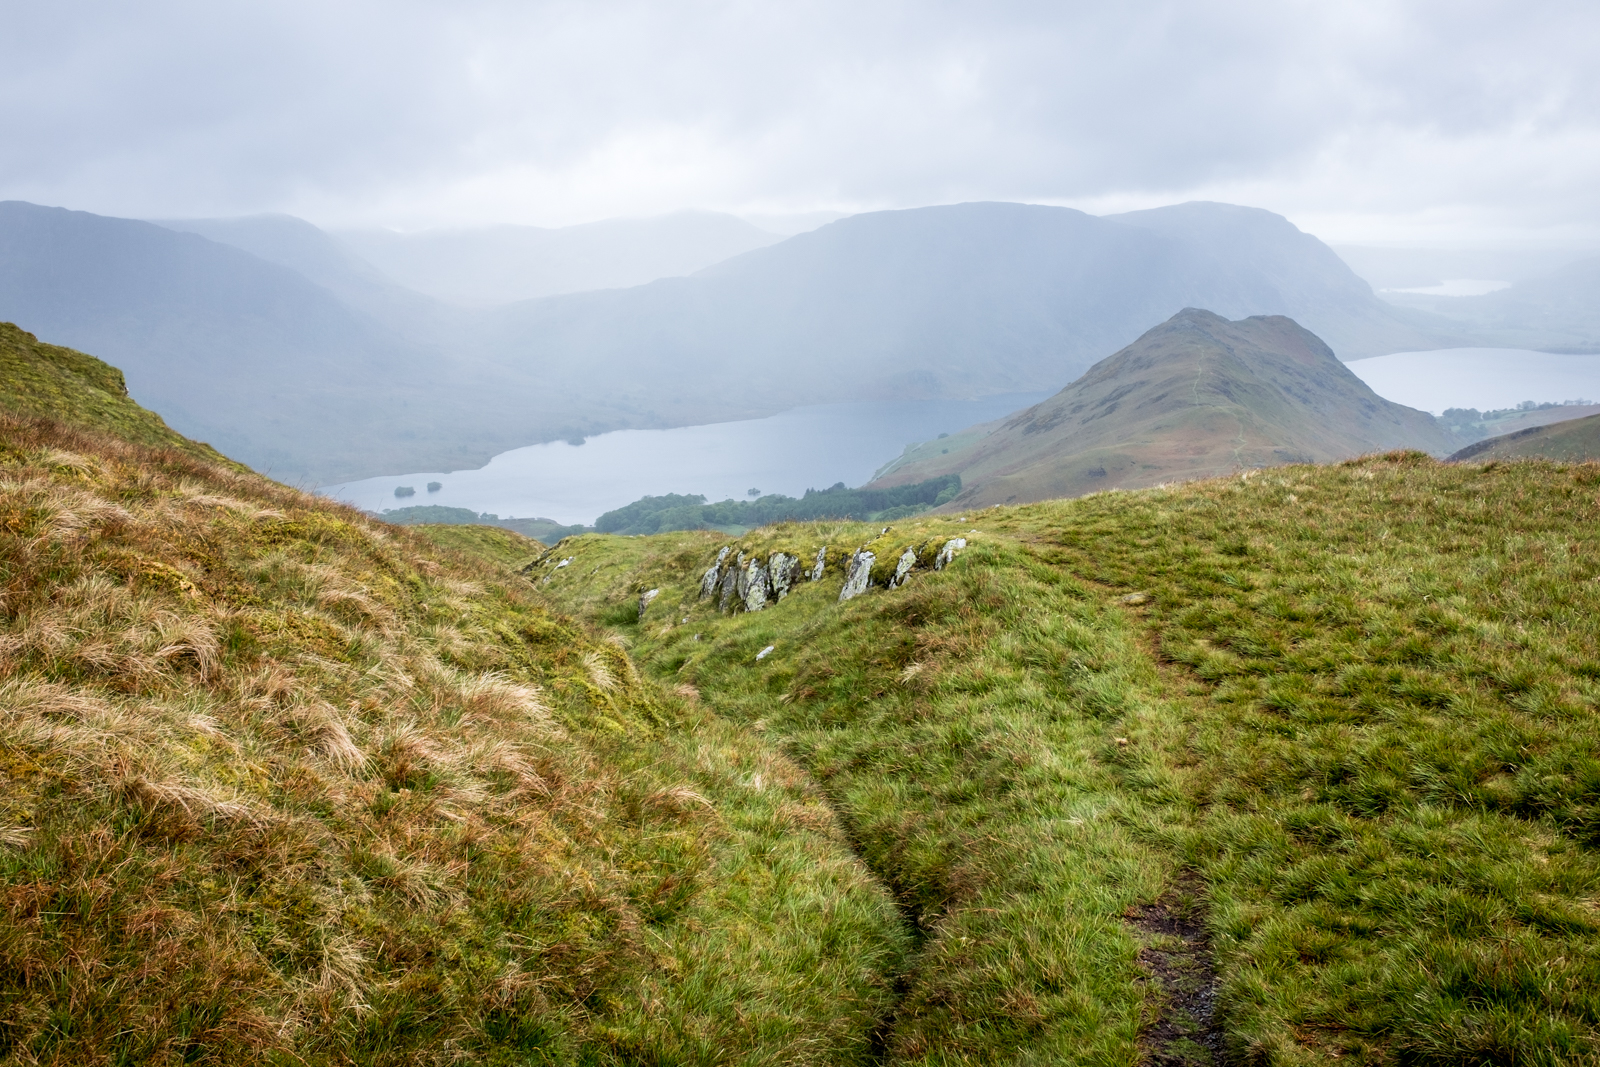 Descending to Buttermere